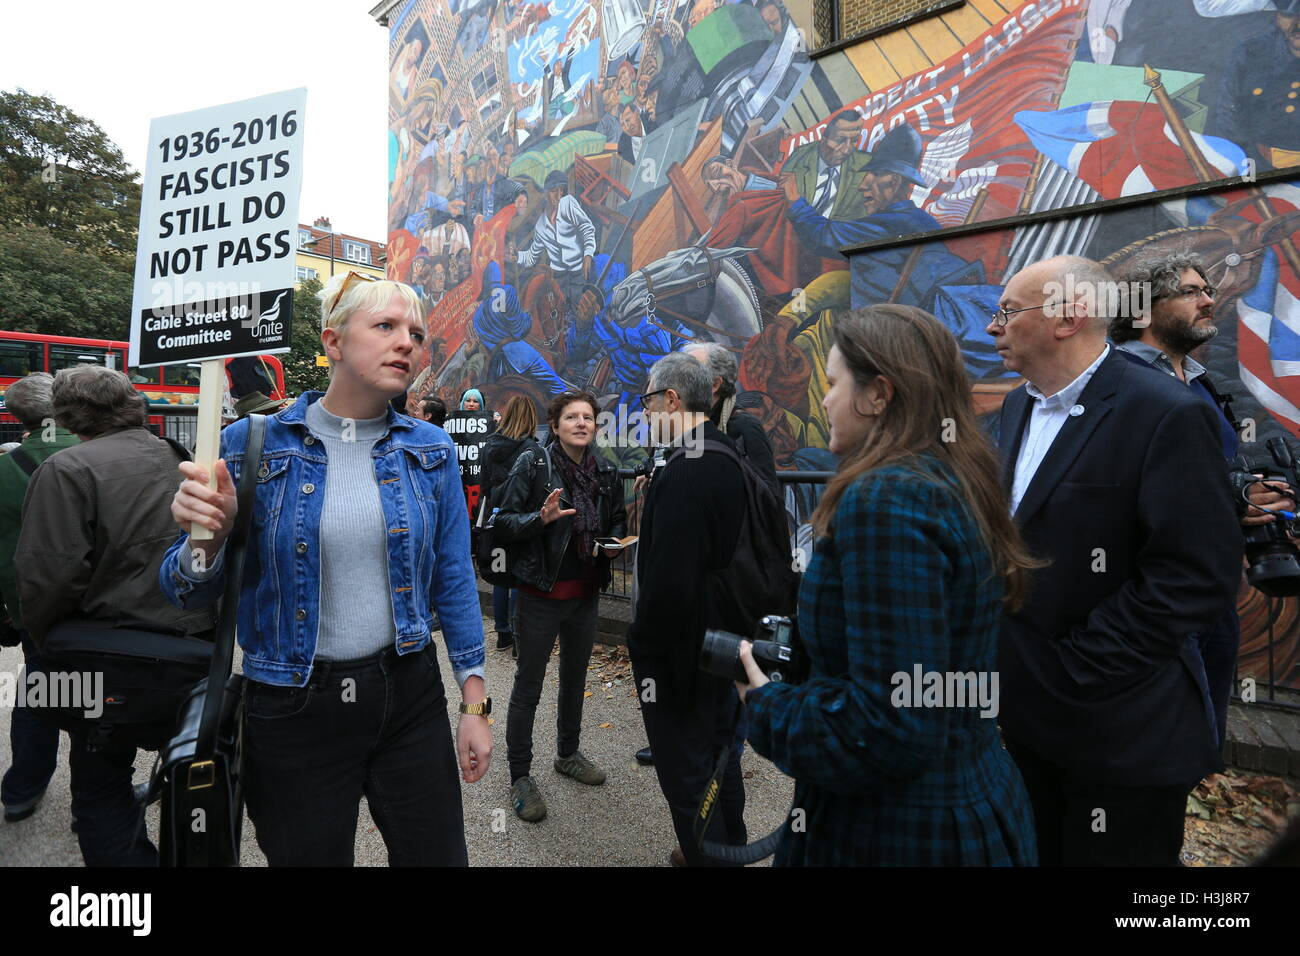 Demonstrators pass by a mural on Cable Street in the East End of London which commemorates the Battle of Cable Street. - Stock Image